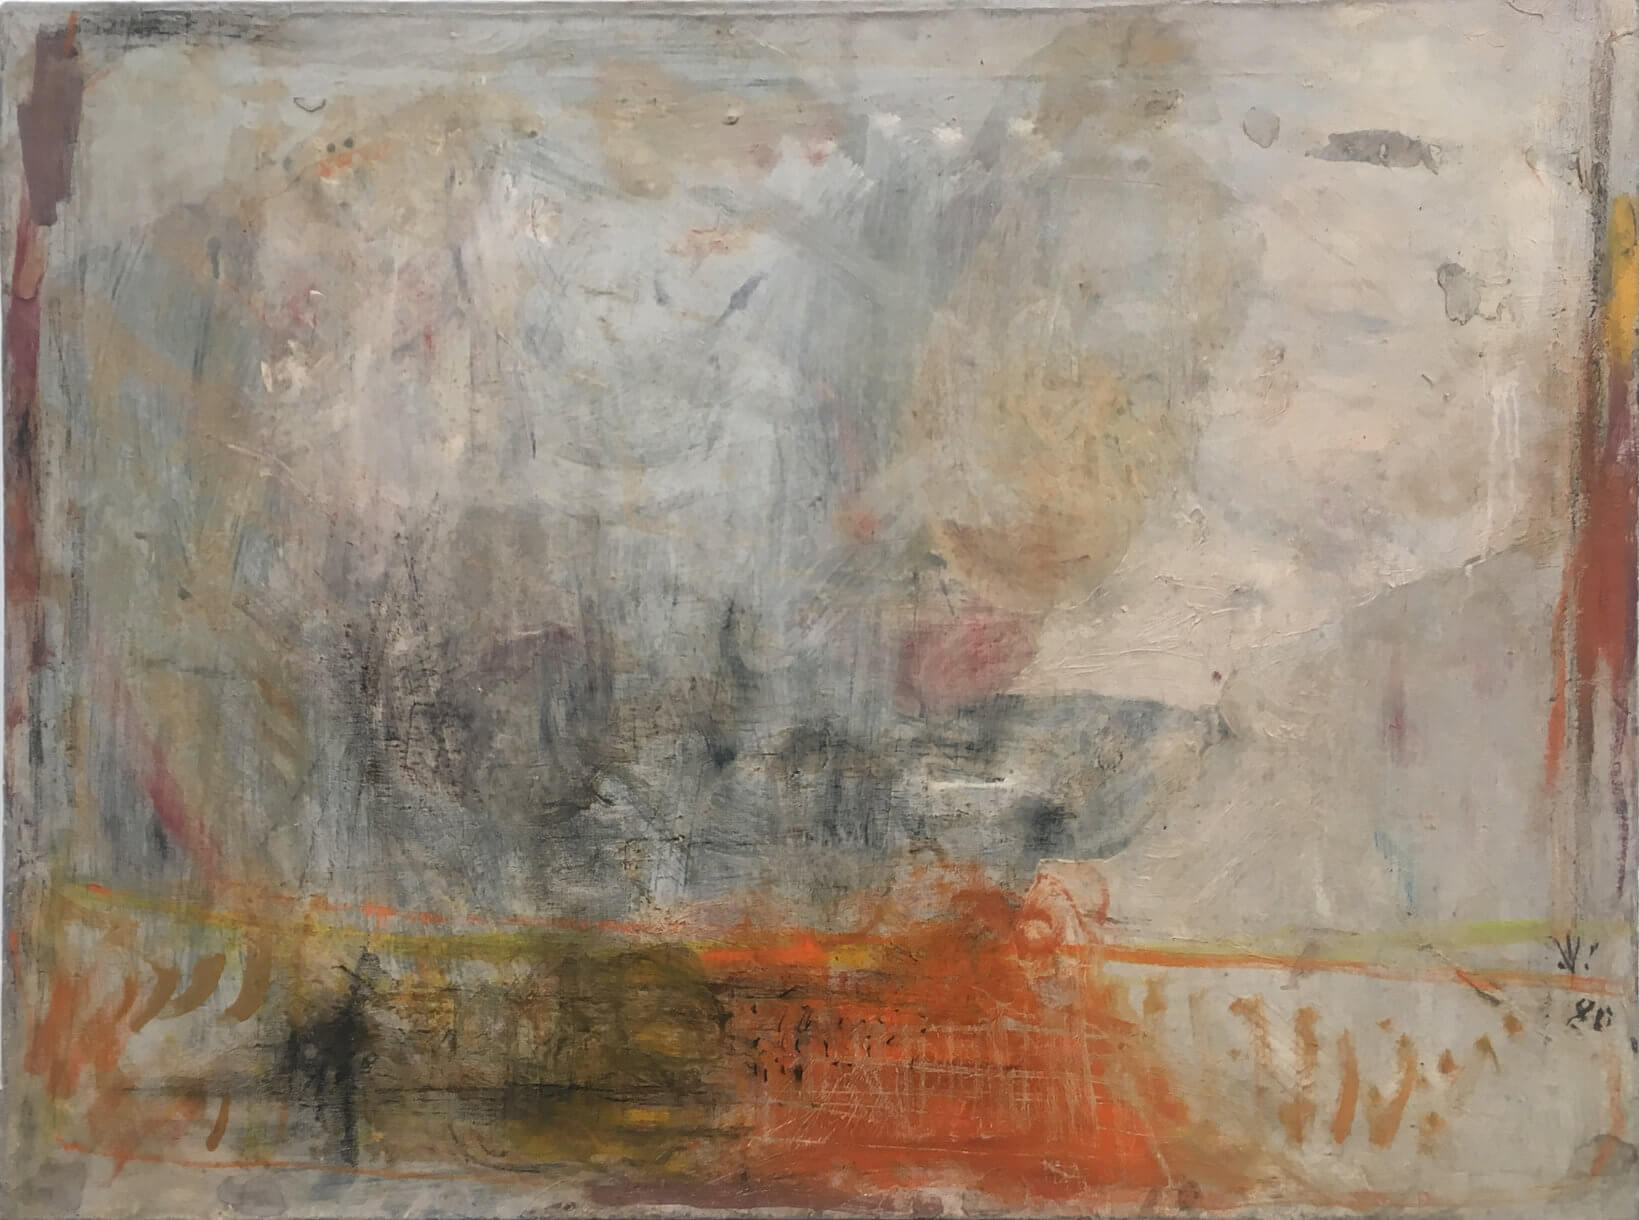 1478_Yehezkel Streichman, 1980, Oil on canvas, 60x80 cm 9,500$-1639x1220